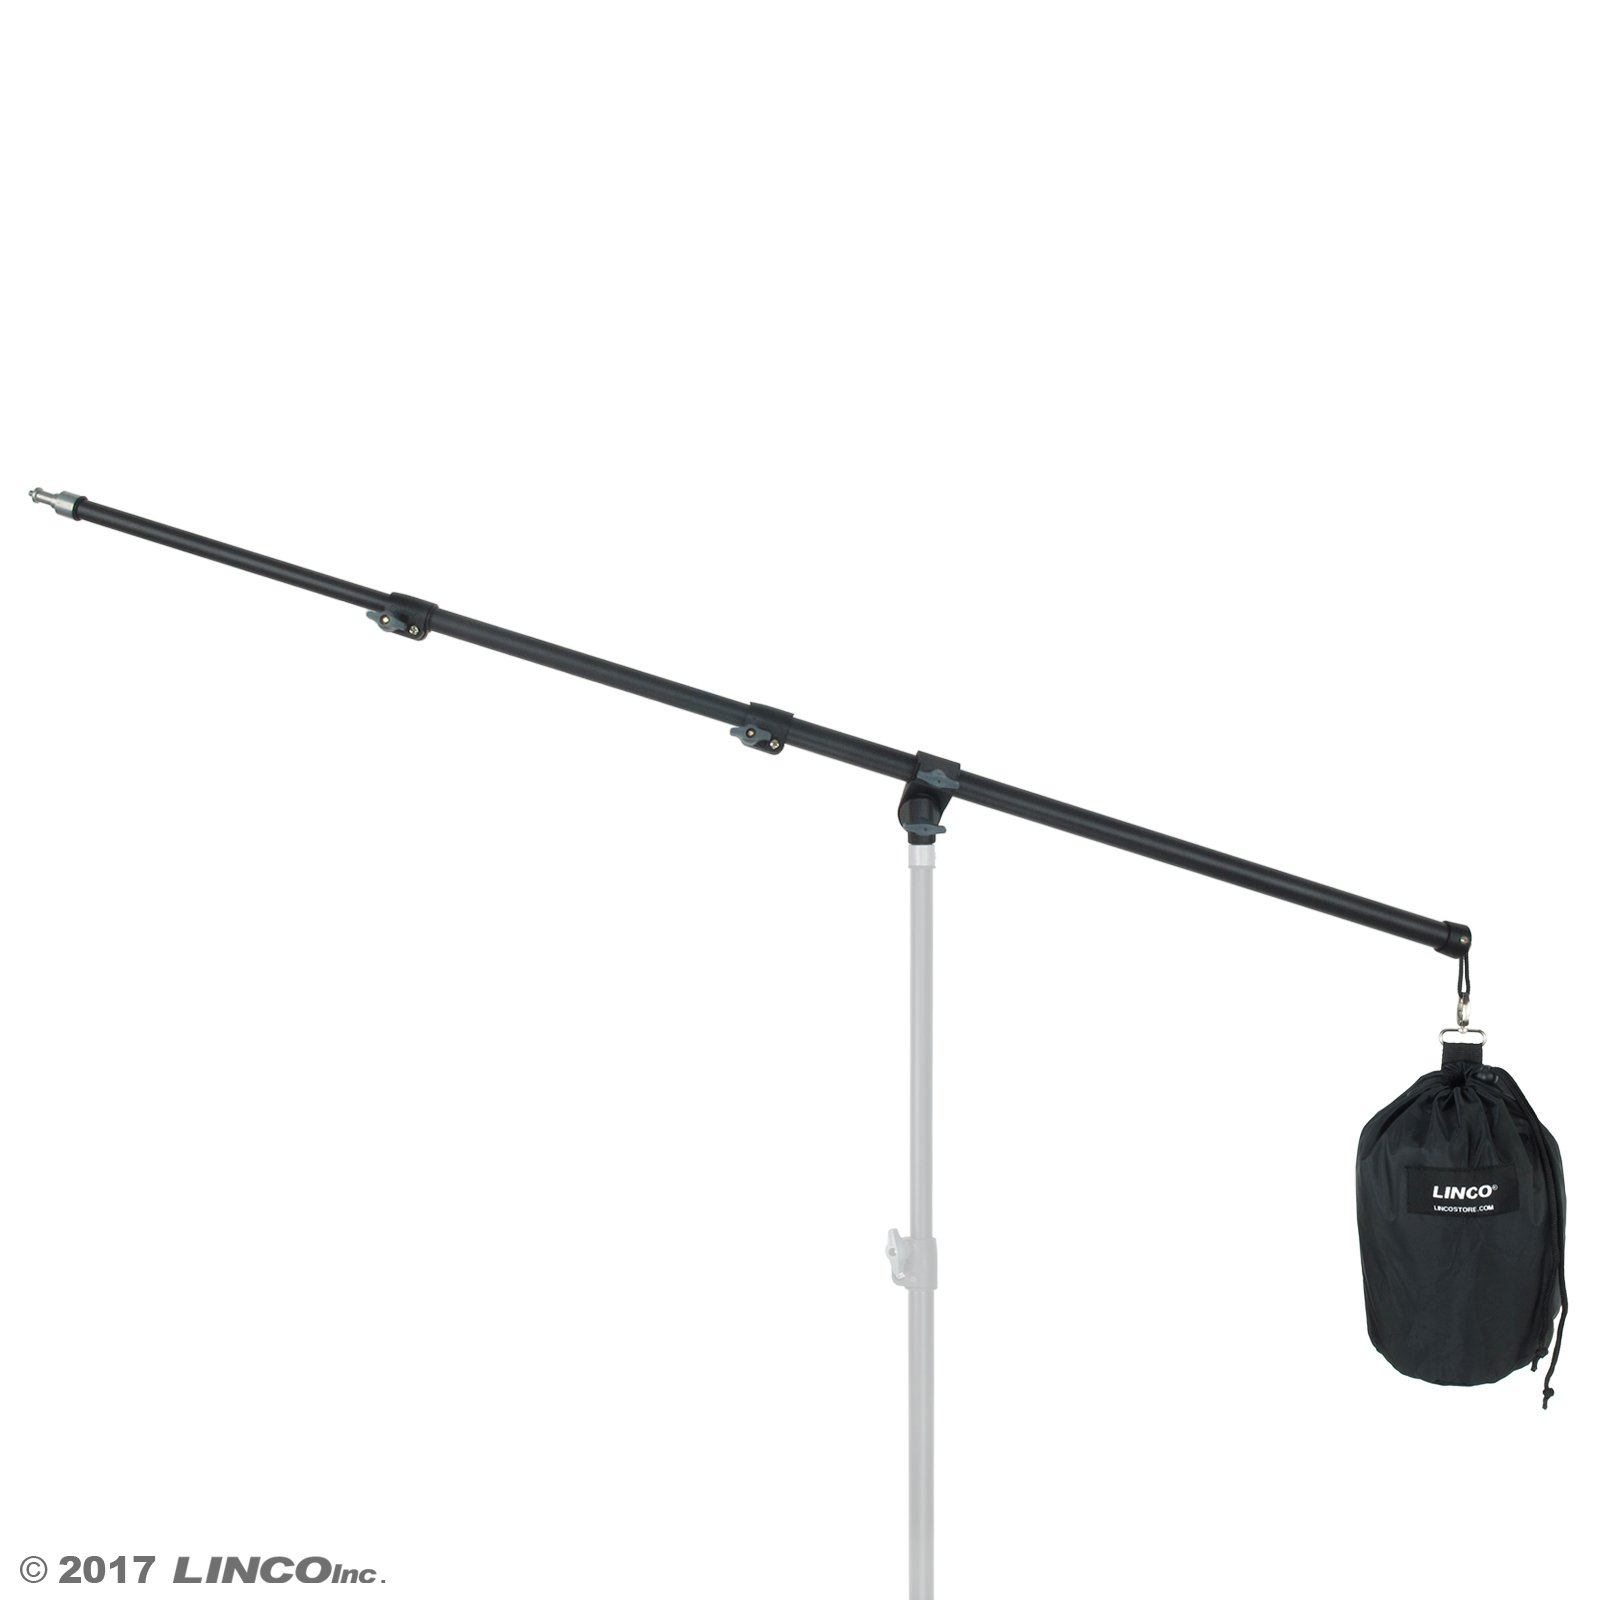 LINCO Lincostore Zenith Photography Boom Arm 83'' / 210cm with Sandbag, AM224 (Not Including Stand)